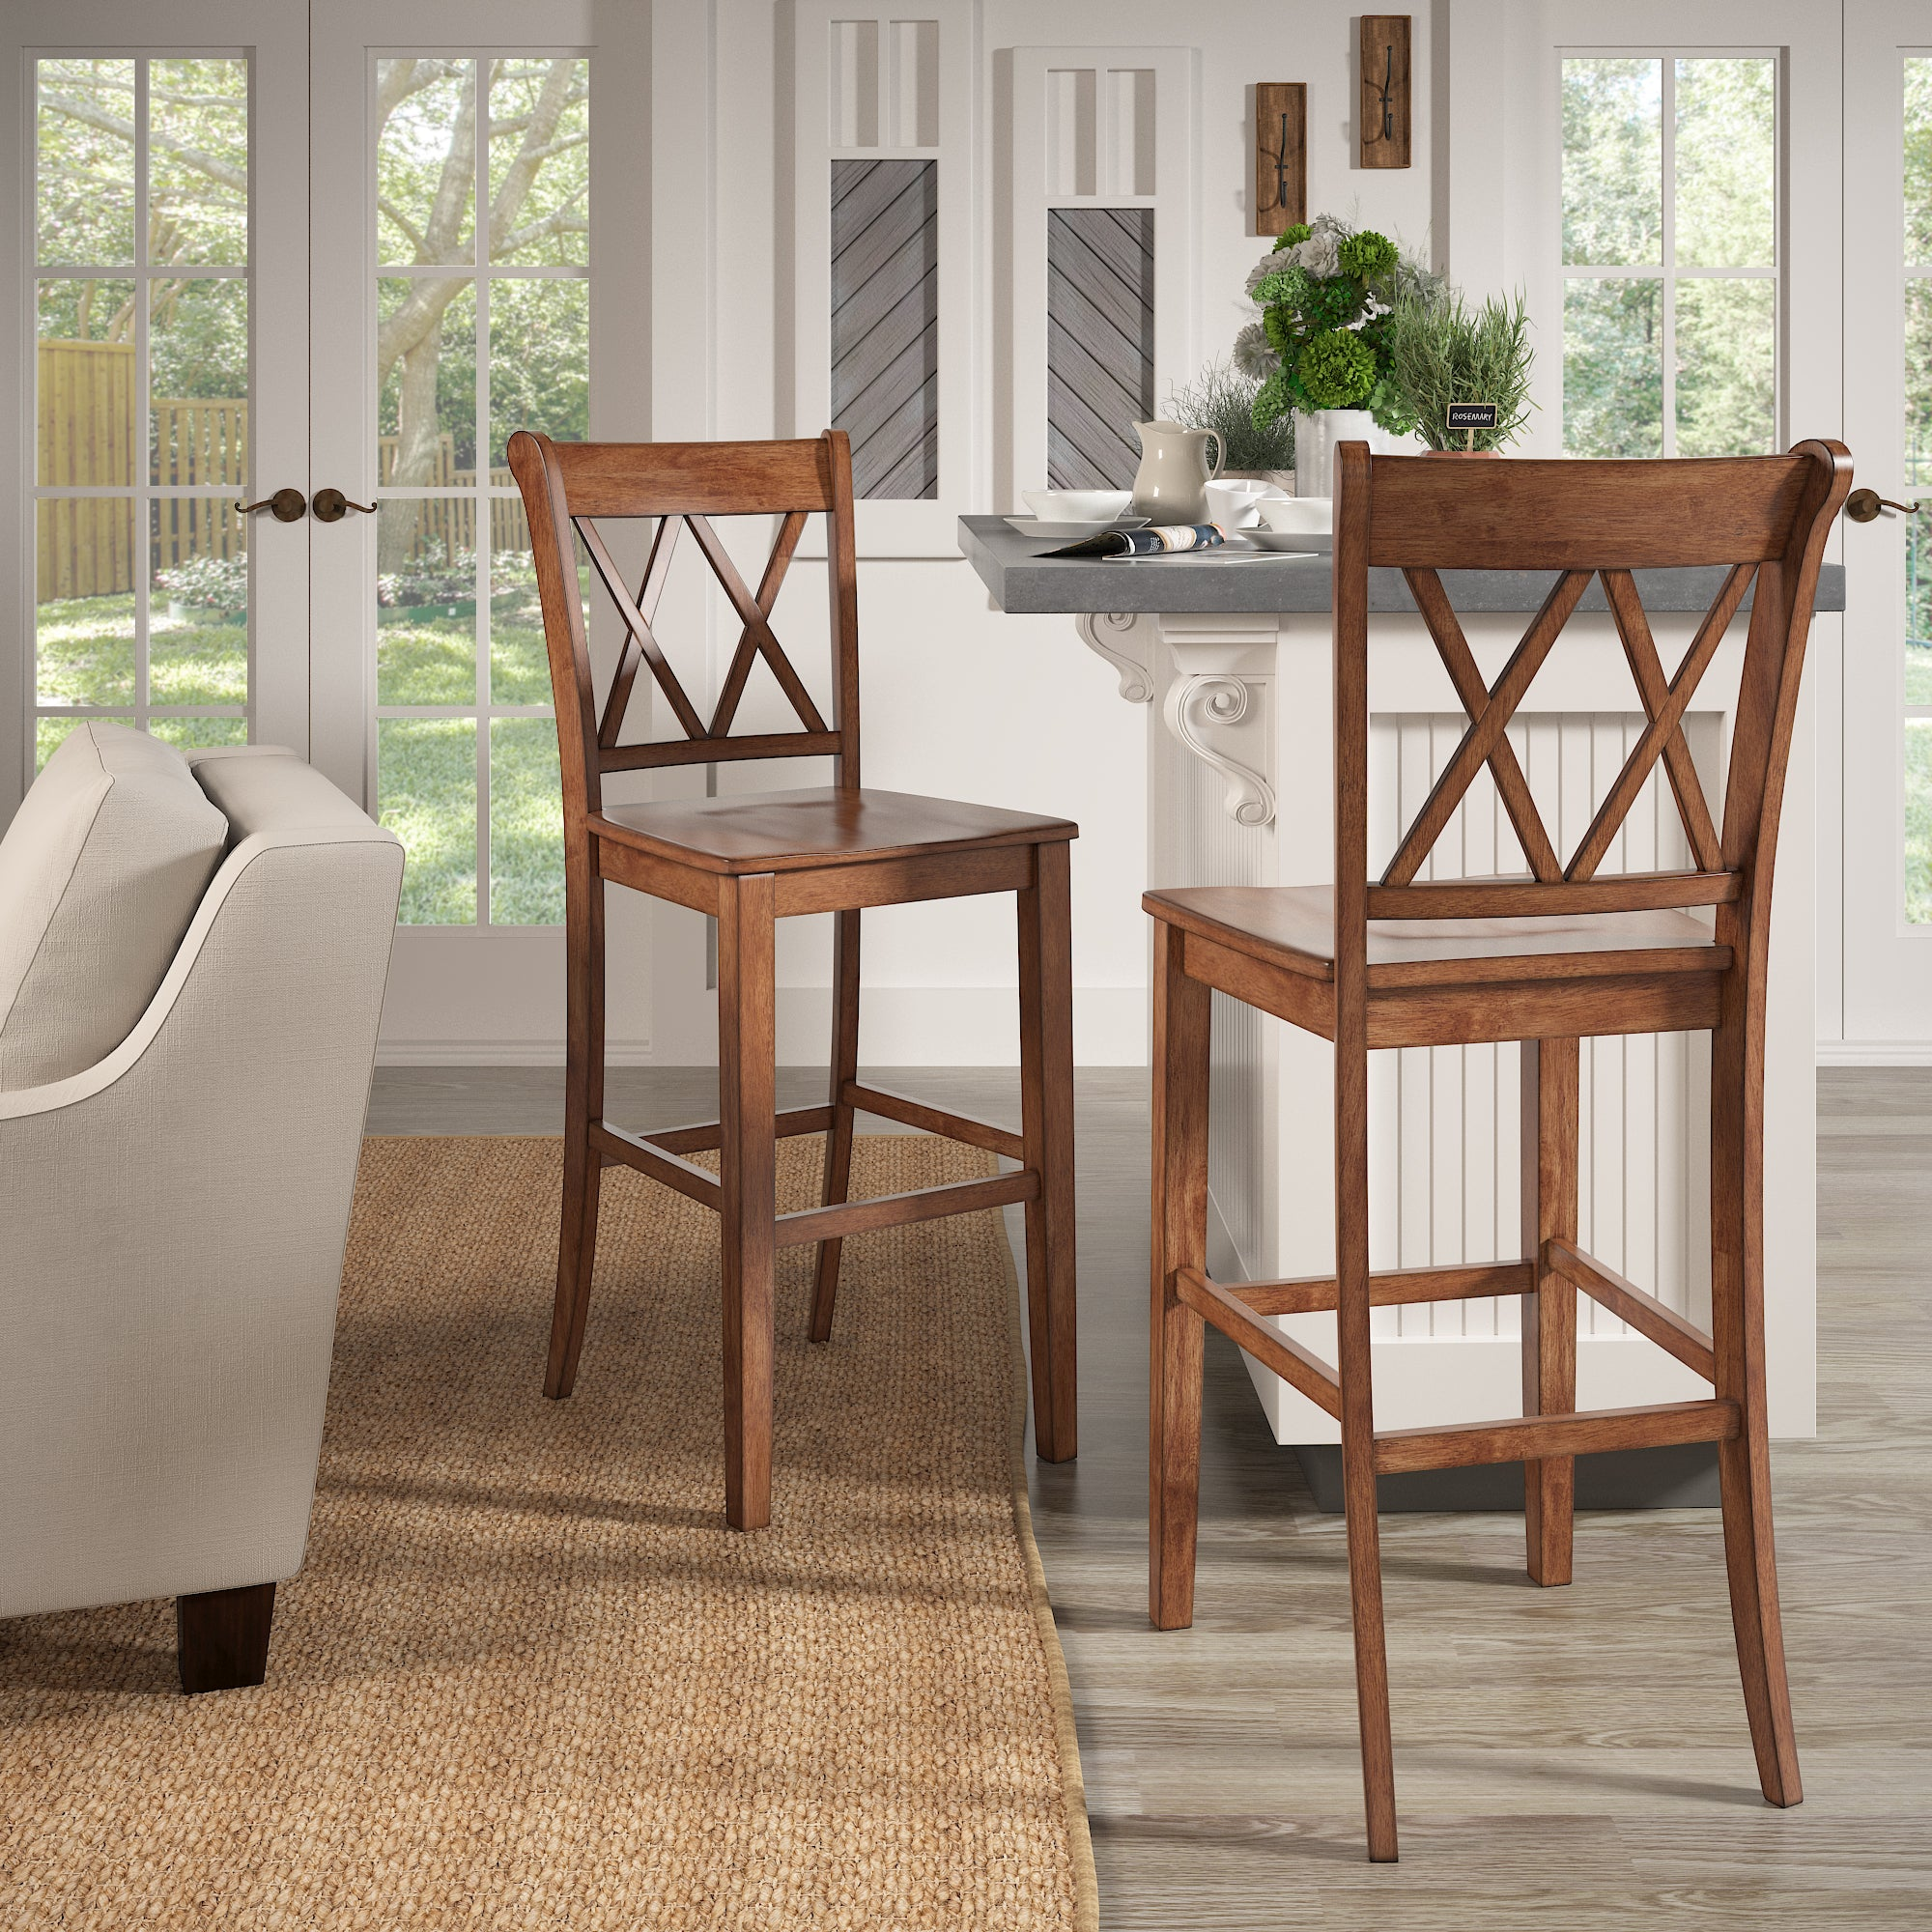 Oak Finish Double X Back Bar Height Chairs (Set of 2)